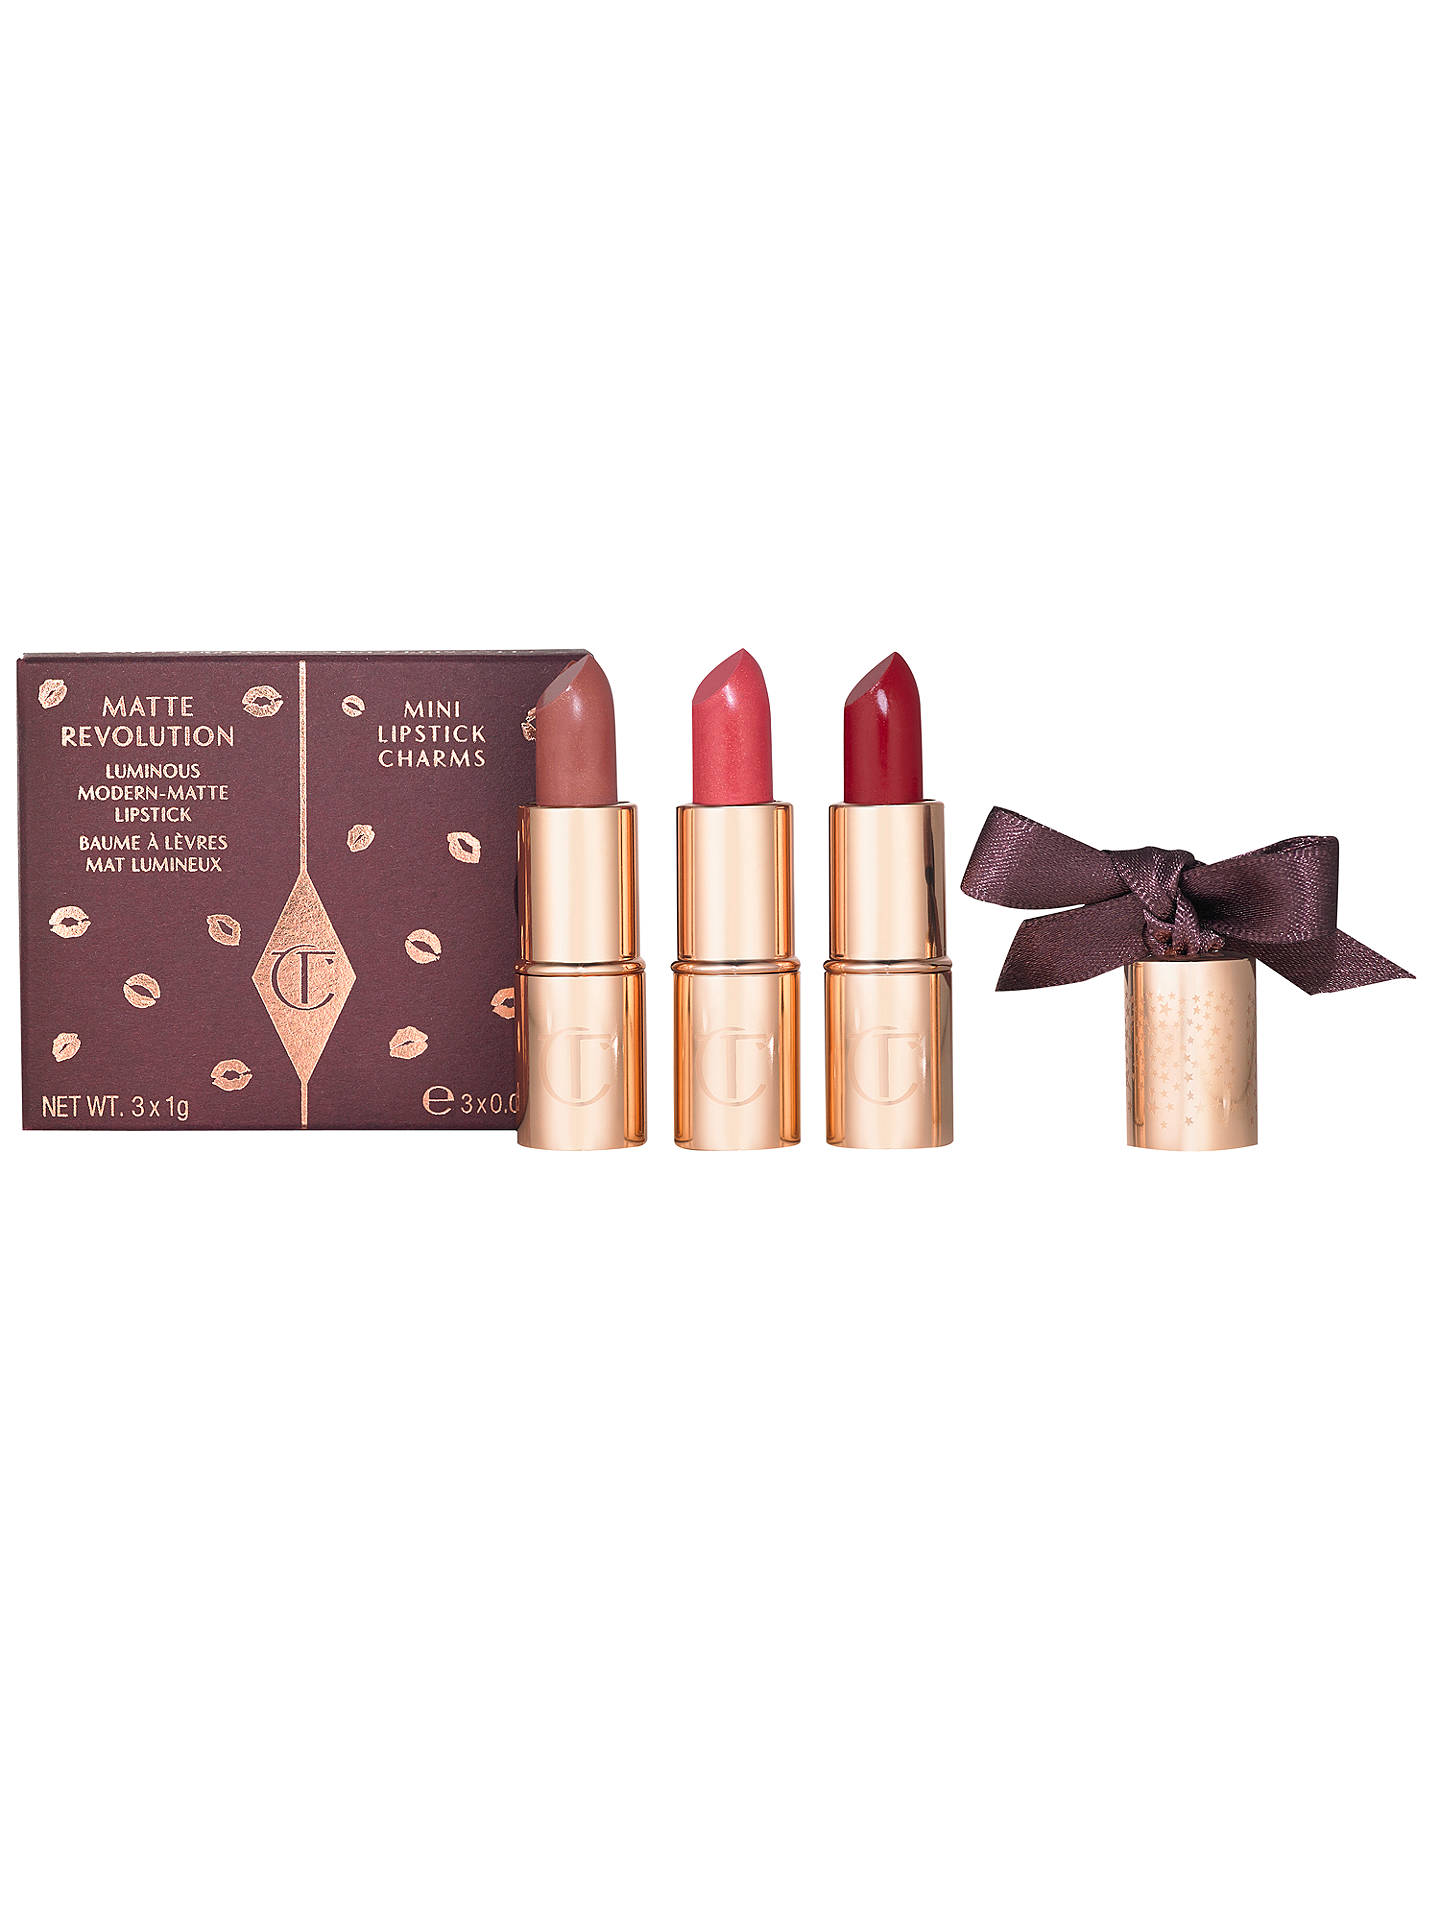 BuyCharlotte Tilbury Mini Lipstick Trio Makeup Gift Set Online at johnlewis.com